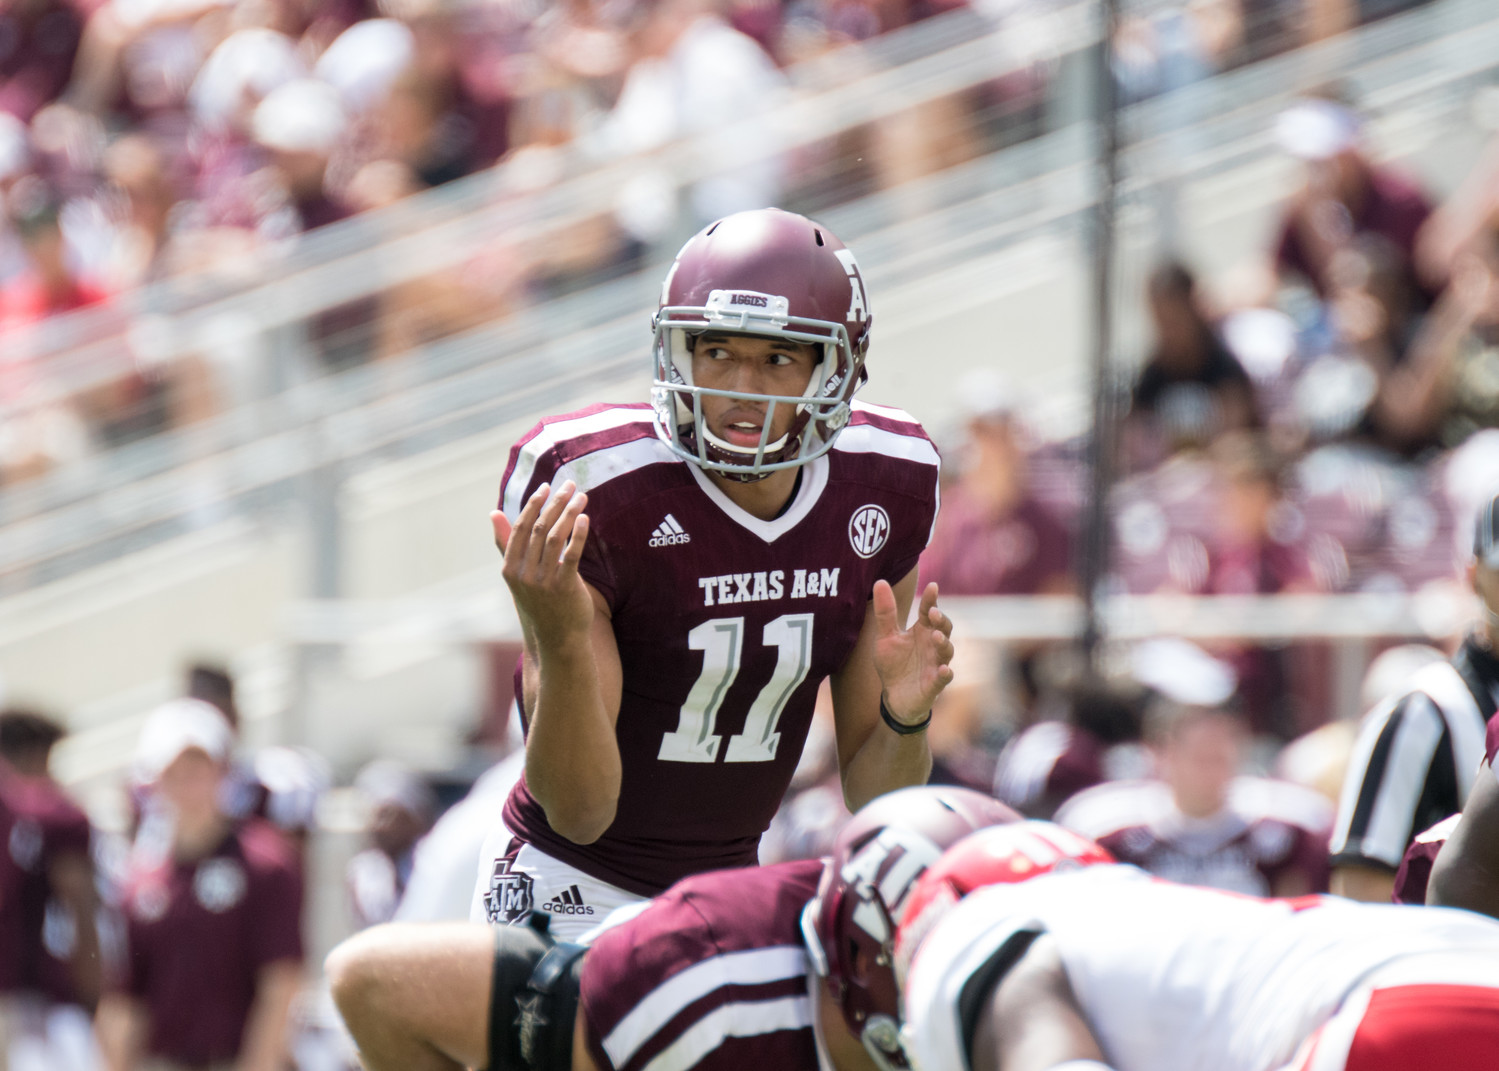 Texas A&M Aggies quarterback Kellen Mond (11) at the line of scrimmage during the game between the Texas A&M Aggies and the Louisiana-Lafayette Ragin' Cajuns at Kyle Field in College Station, Texas.